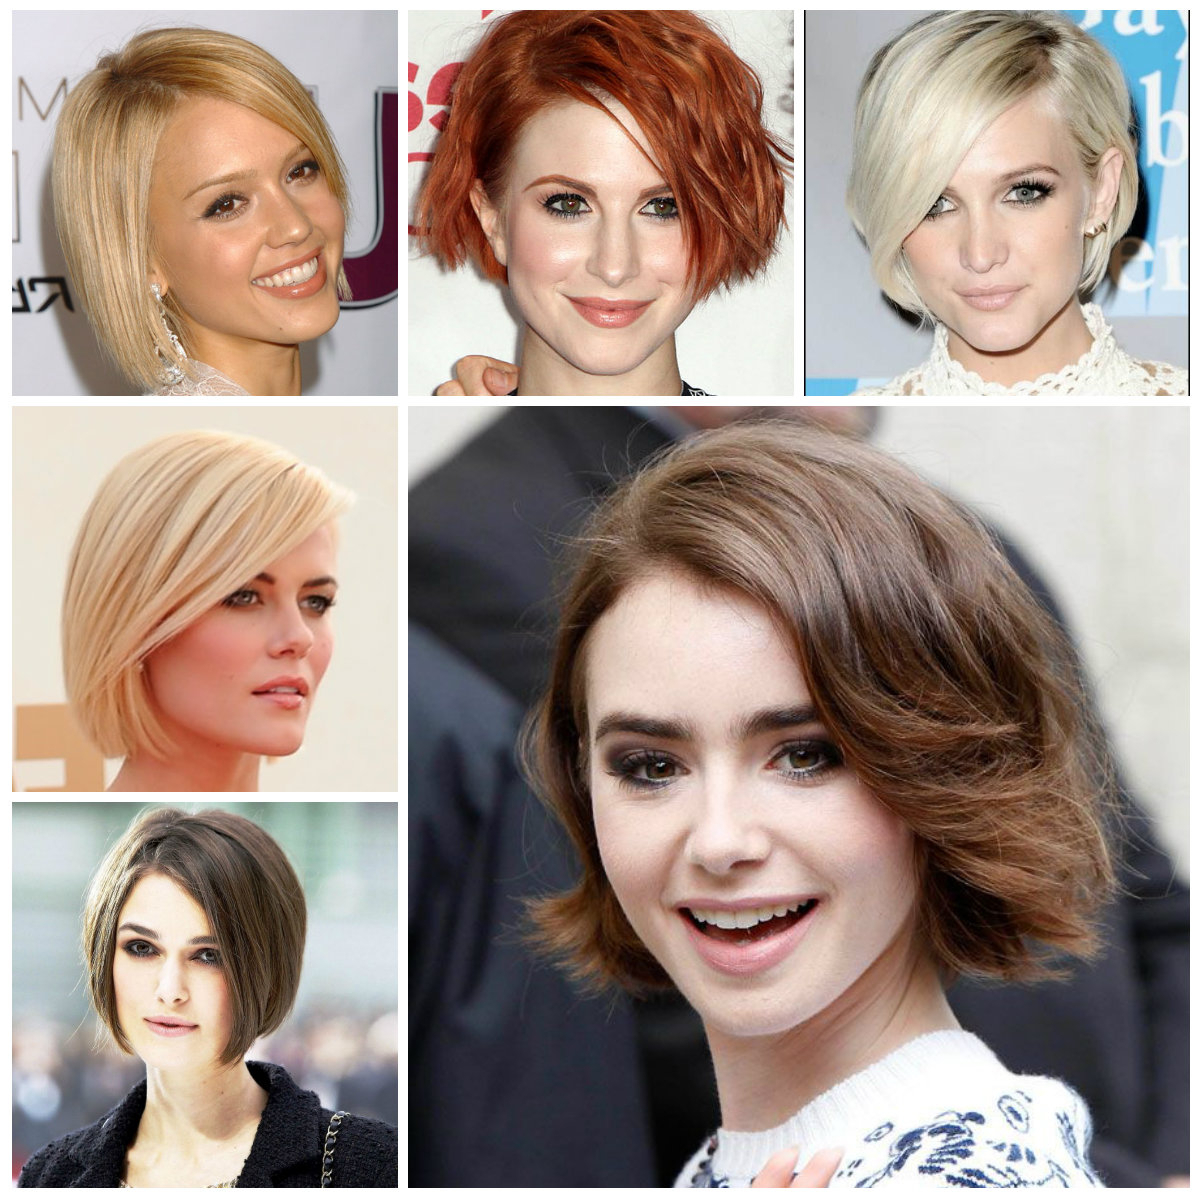 Bob Hairstyles | Hairstyles For Women 2019, Haircuts For Long Short In Neat Short Rounded Bob Hairstyles For Straight Hair (View 16 of 20)